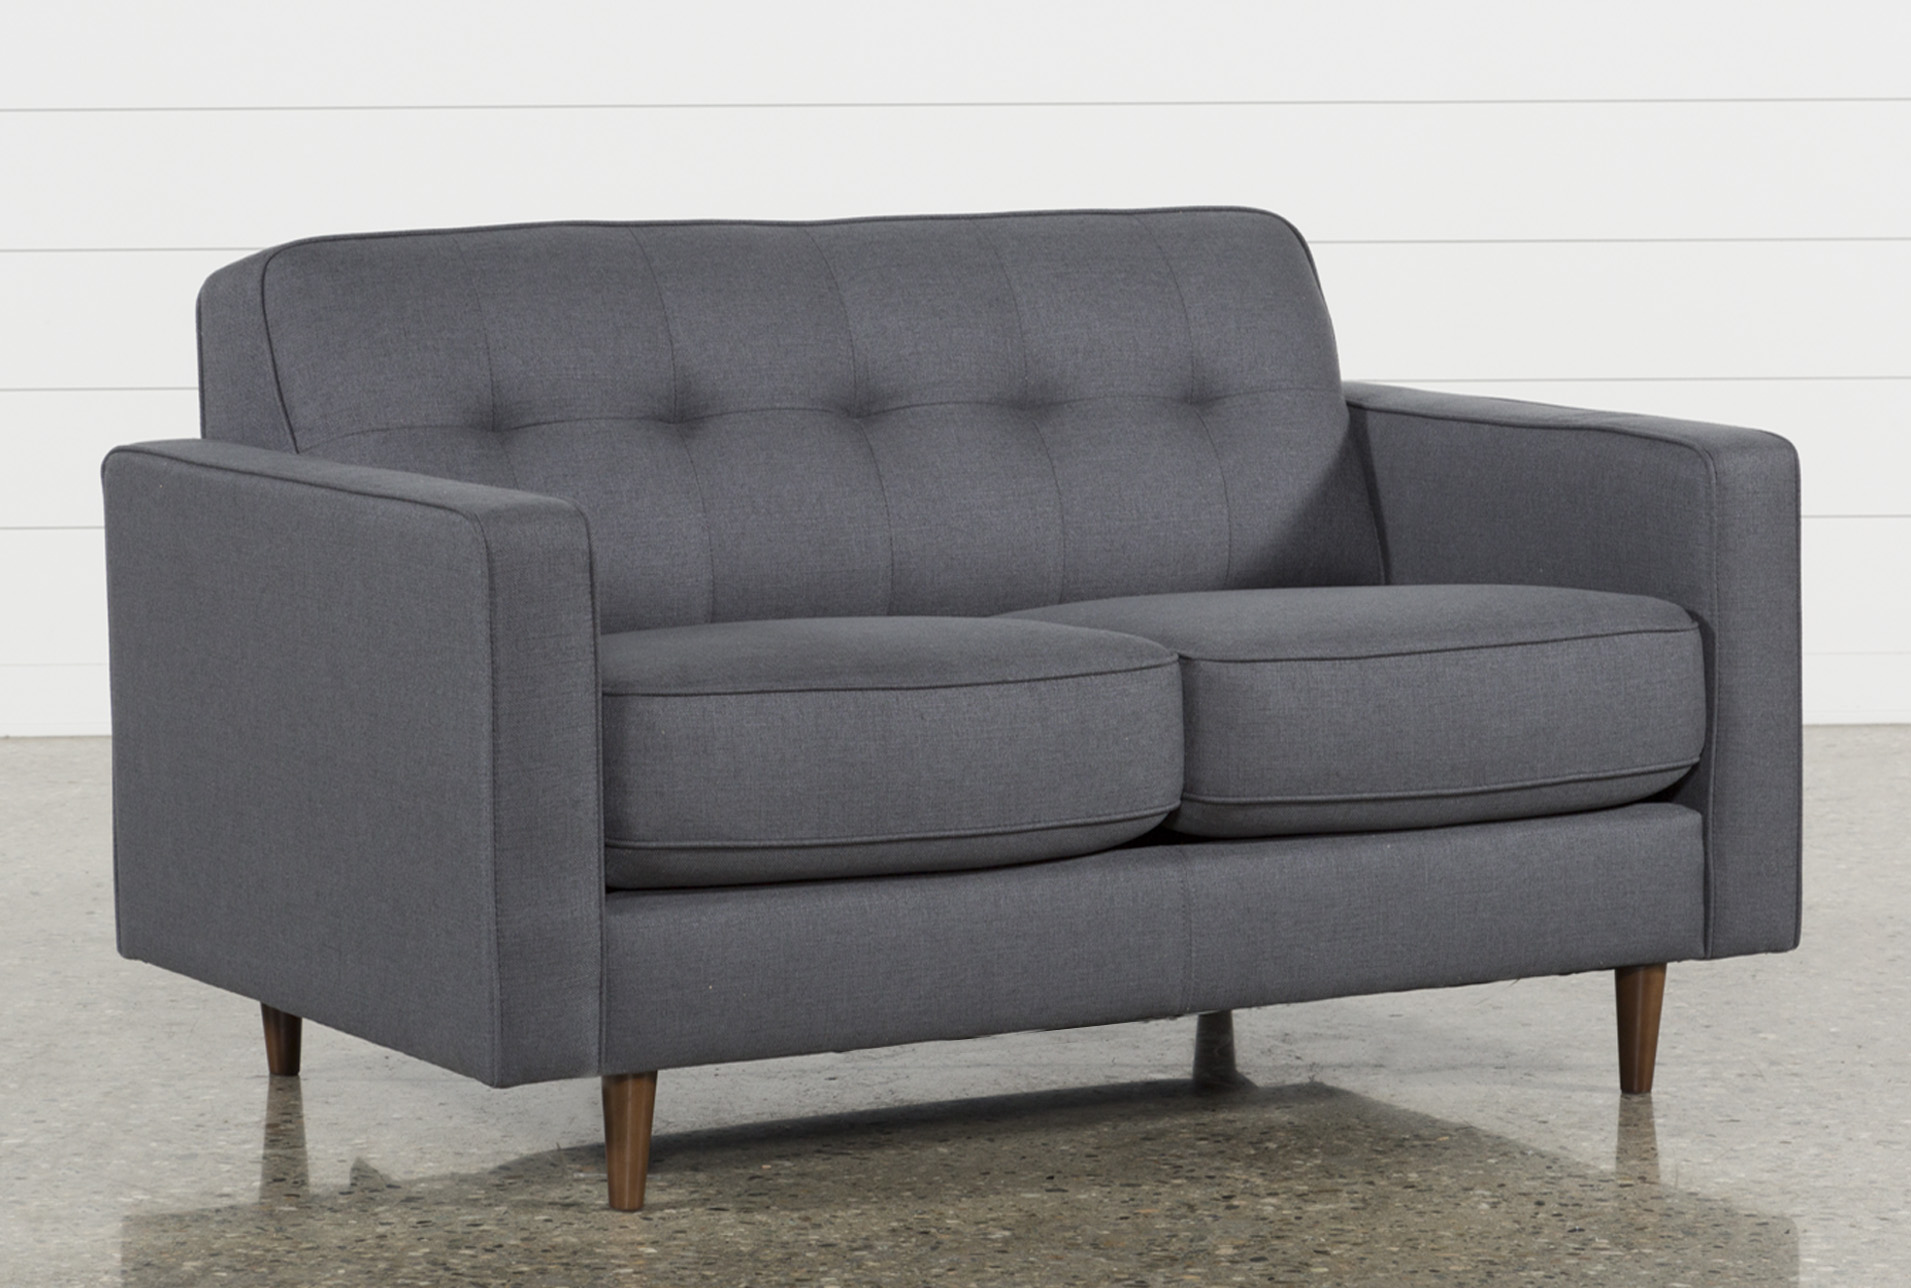 Genial London Dark Grey Twin Plus Sleeper Sofa (Qty: 1) Has Been Successfully  Added To Your Cart.